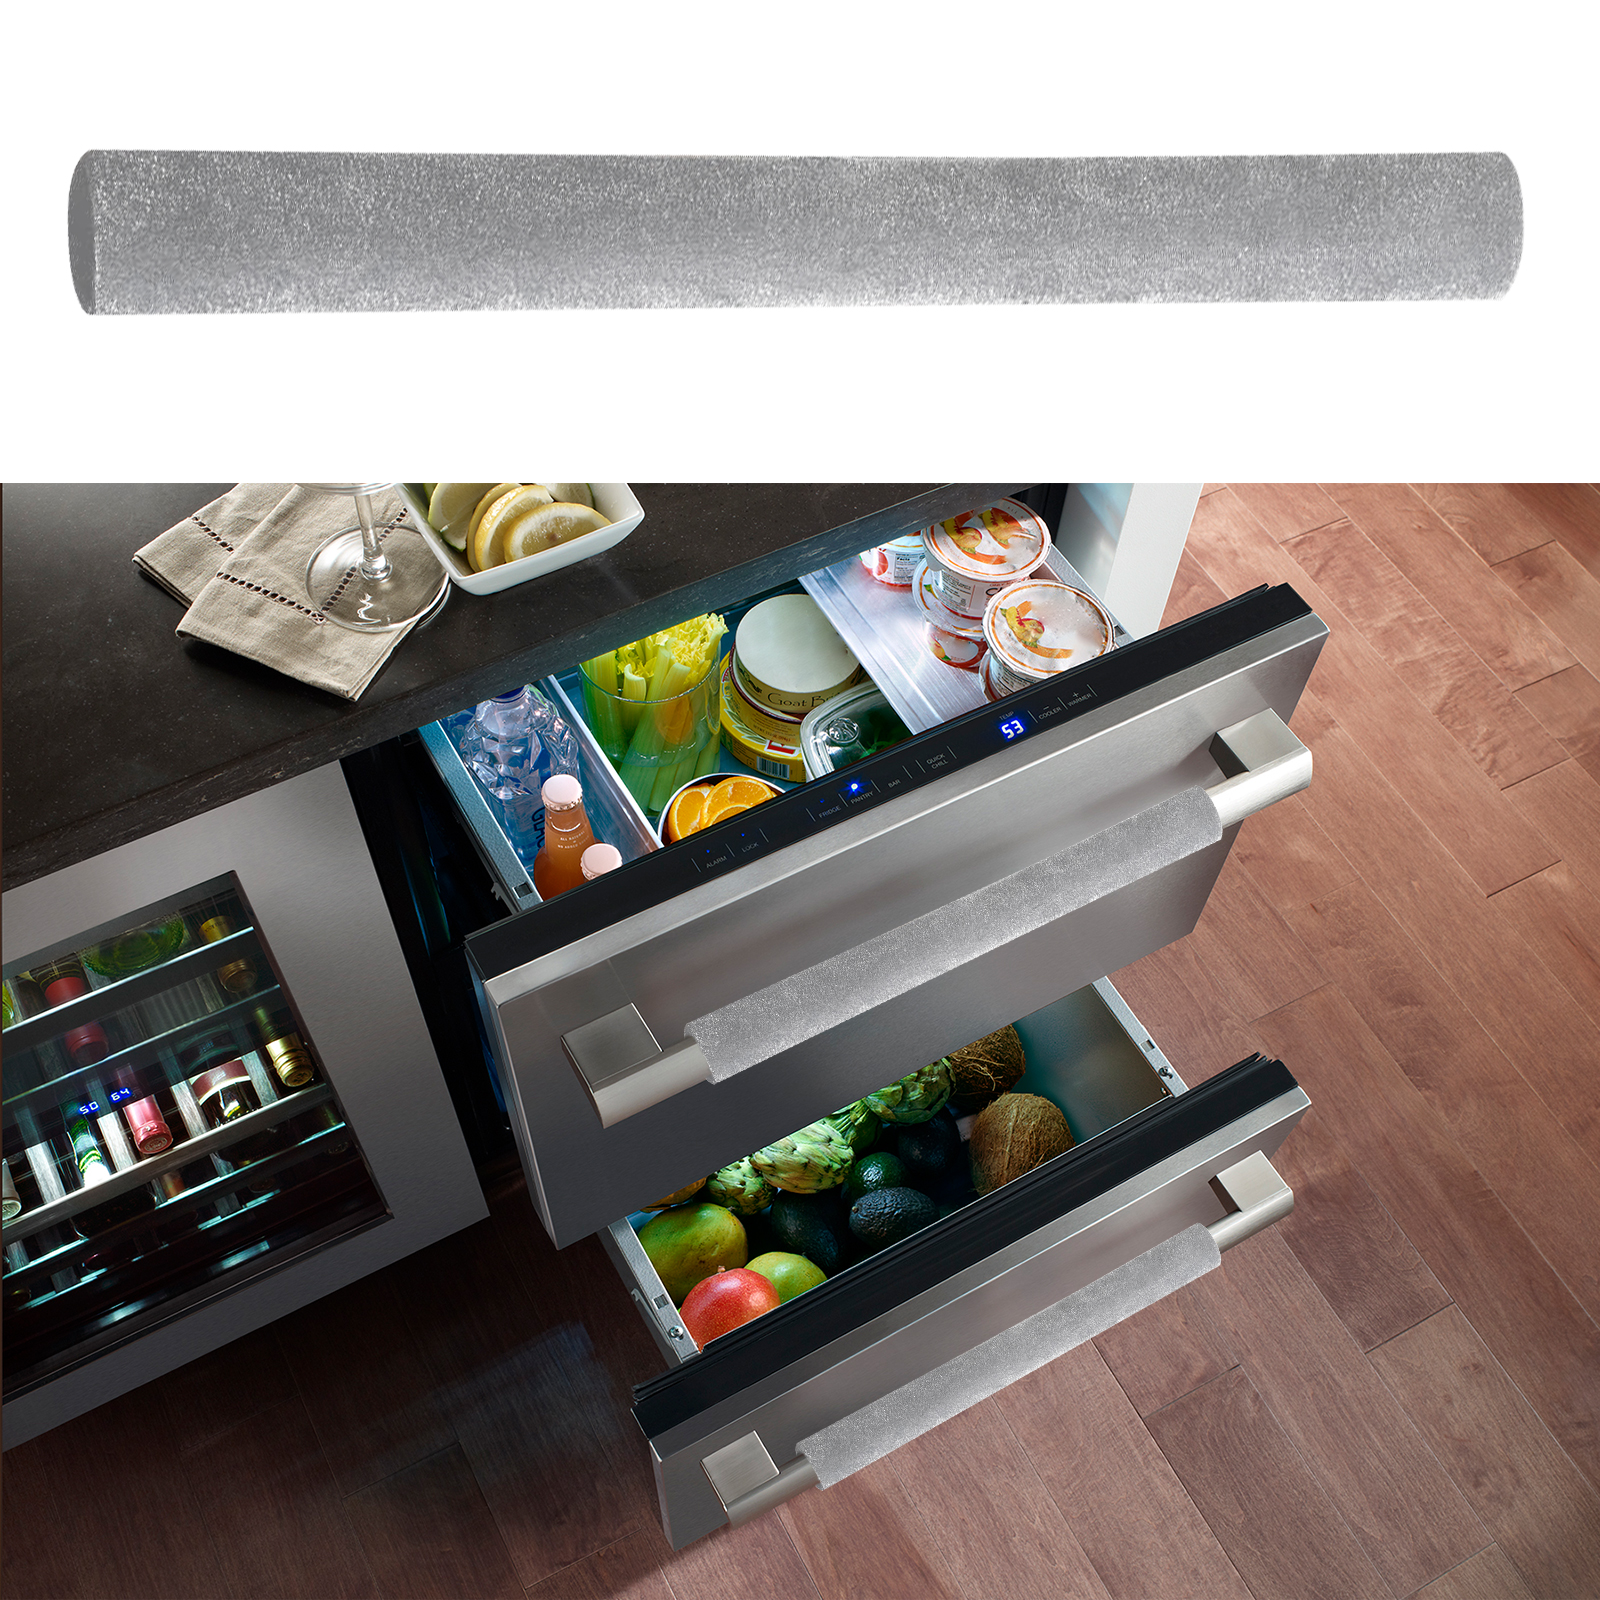 2-4pcs-Kitchen-Refrigerator-Oven-Door-Handle-Cover-Home-Decor-Protector-Smudges thumbnail 6